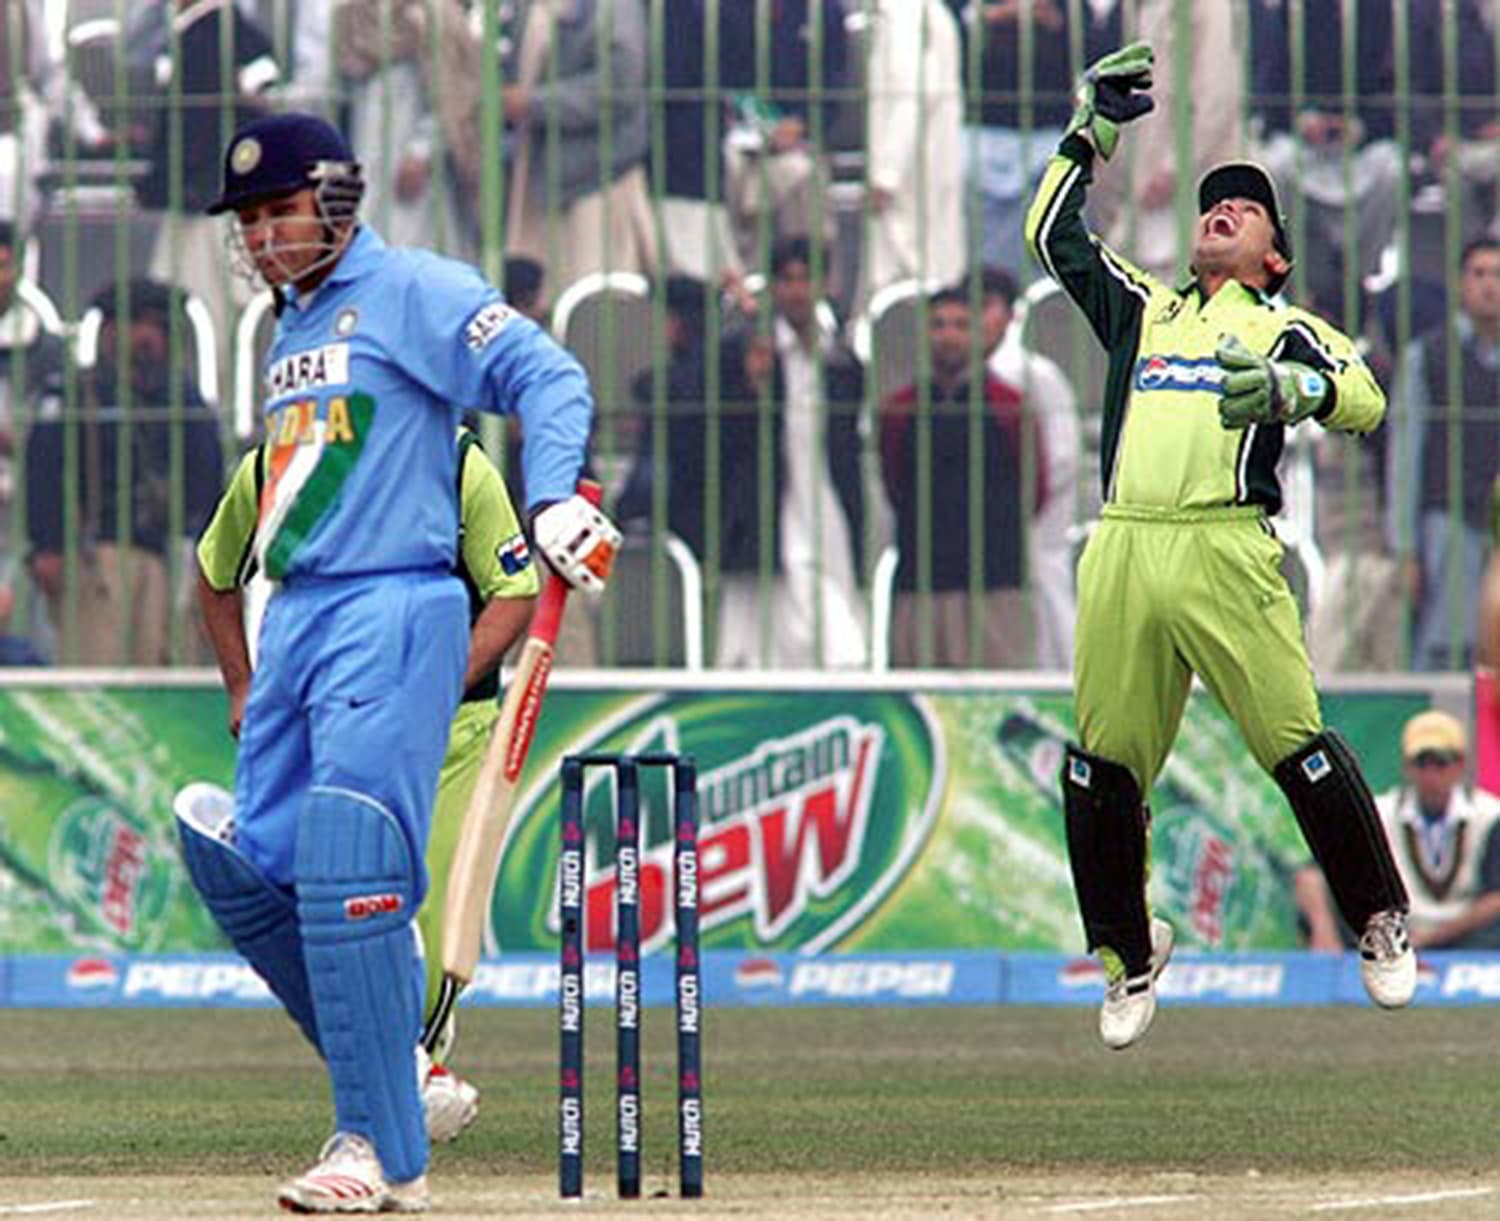 2006: A Pakistan-India ODI at Arbab Niaz Stadium, Peshawar. (Pic: Cricinfo)